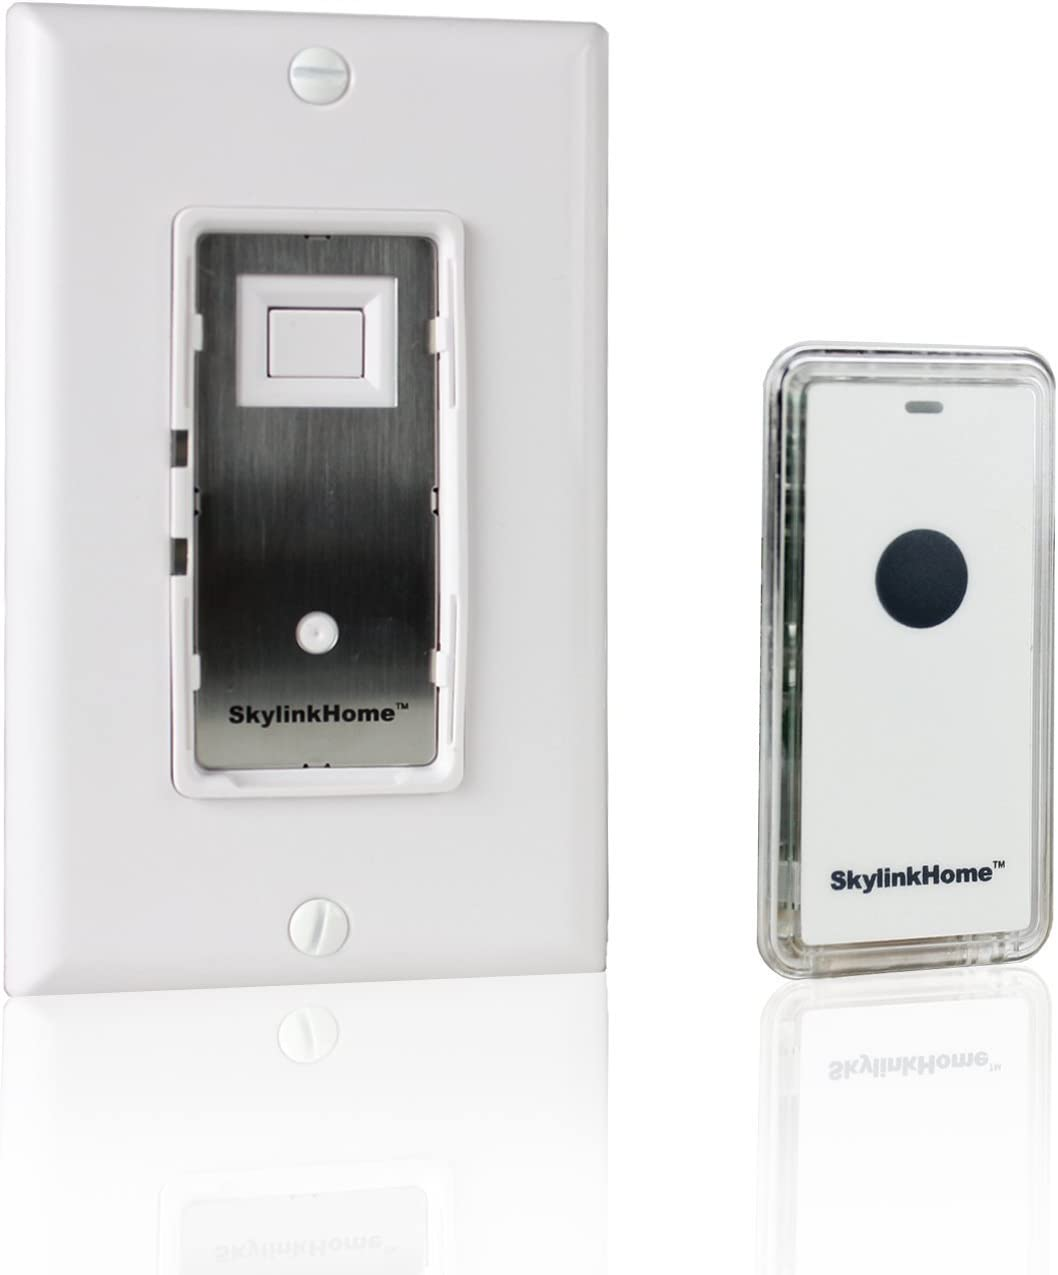 SkylinkHome WE-318 In-WallON/OFF Lighting Switch Receiver with Wireless Snap On Transmitter for Home Automation and Control (1000 Watts)